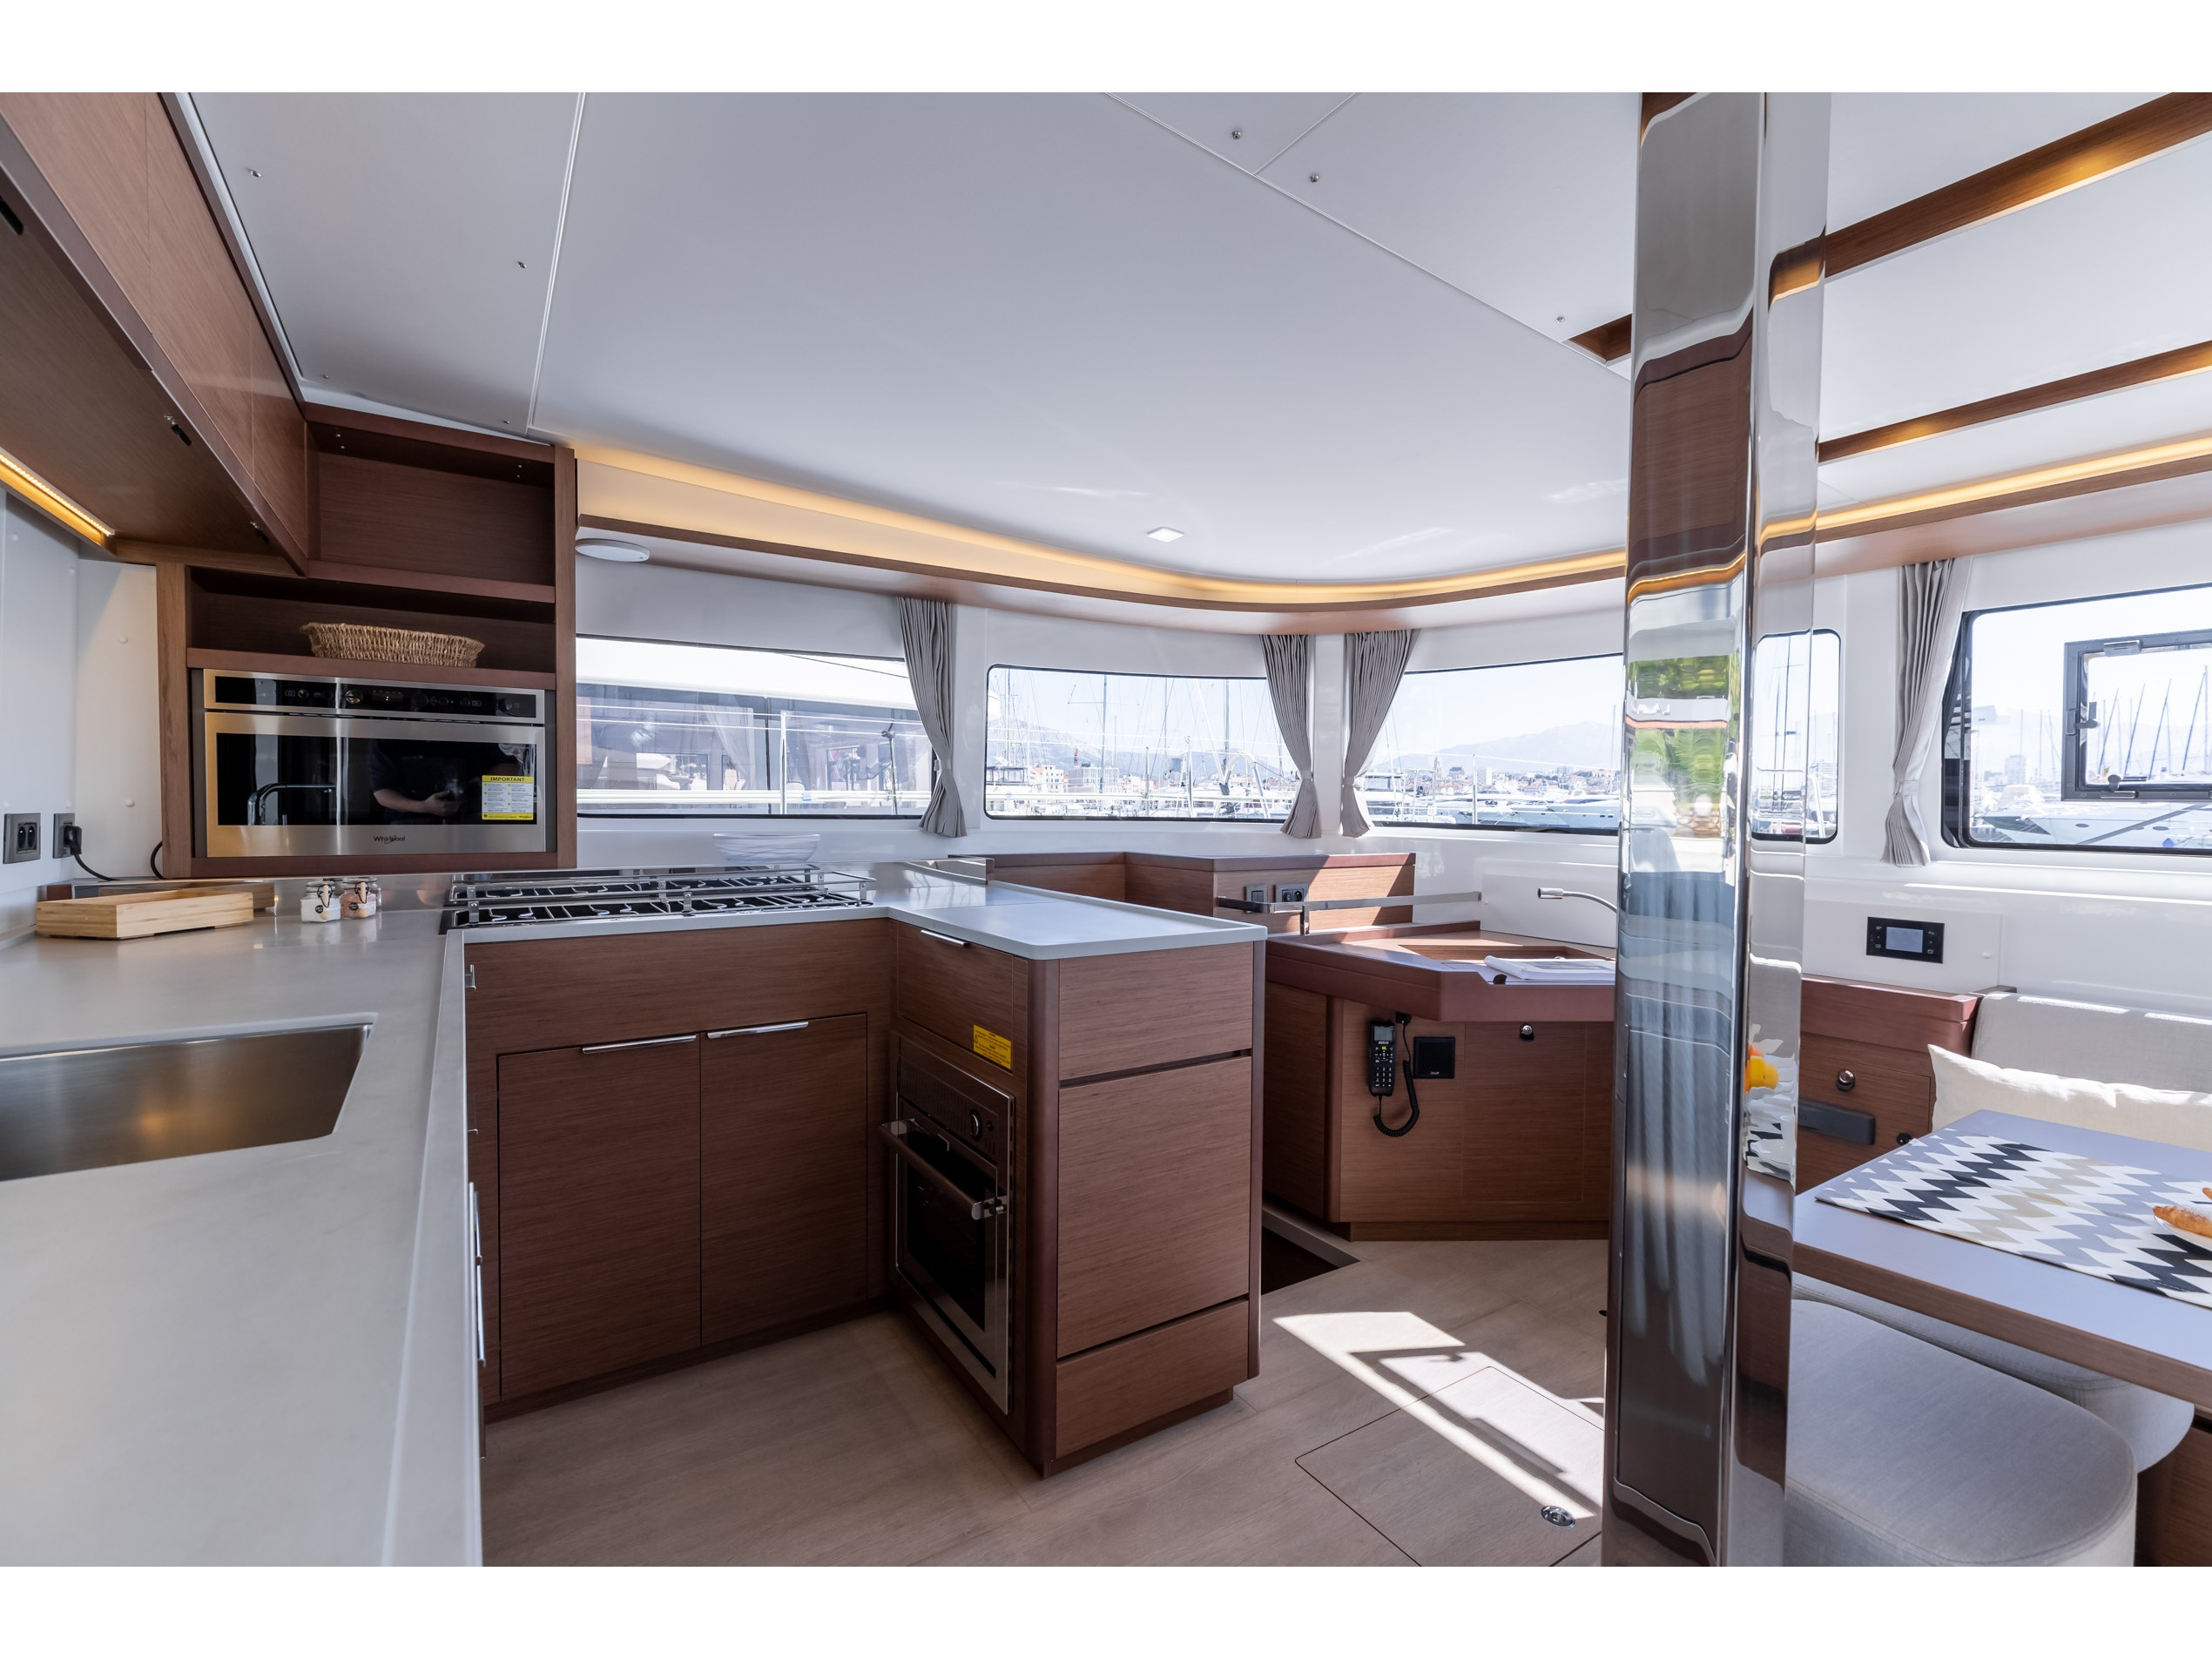 Lagoon 46 (2020) equipped with generator, A/C (sal (HANGOVER) Interior image - 24